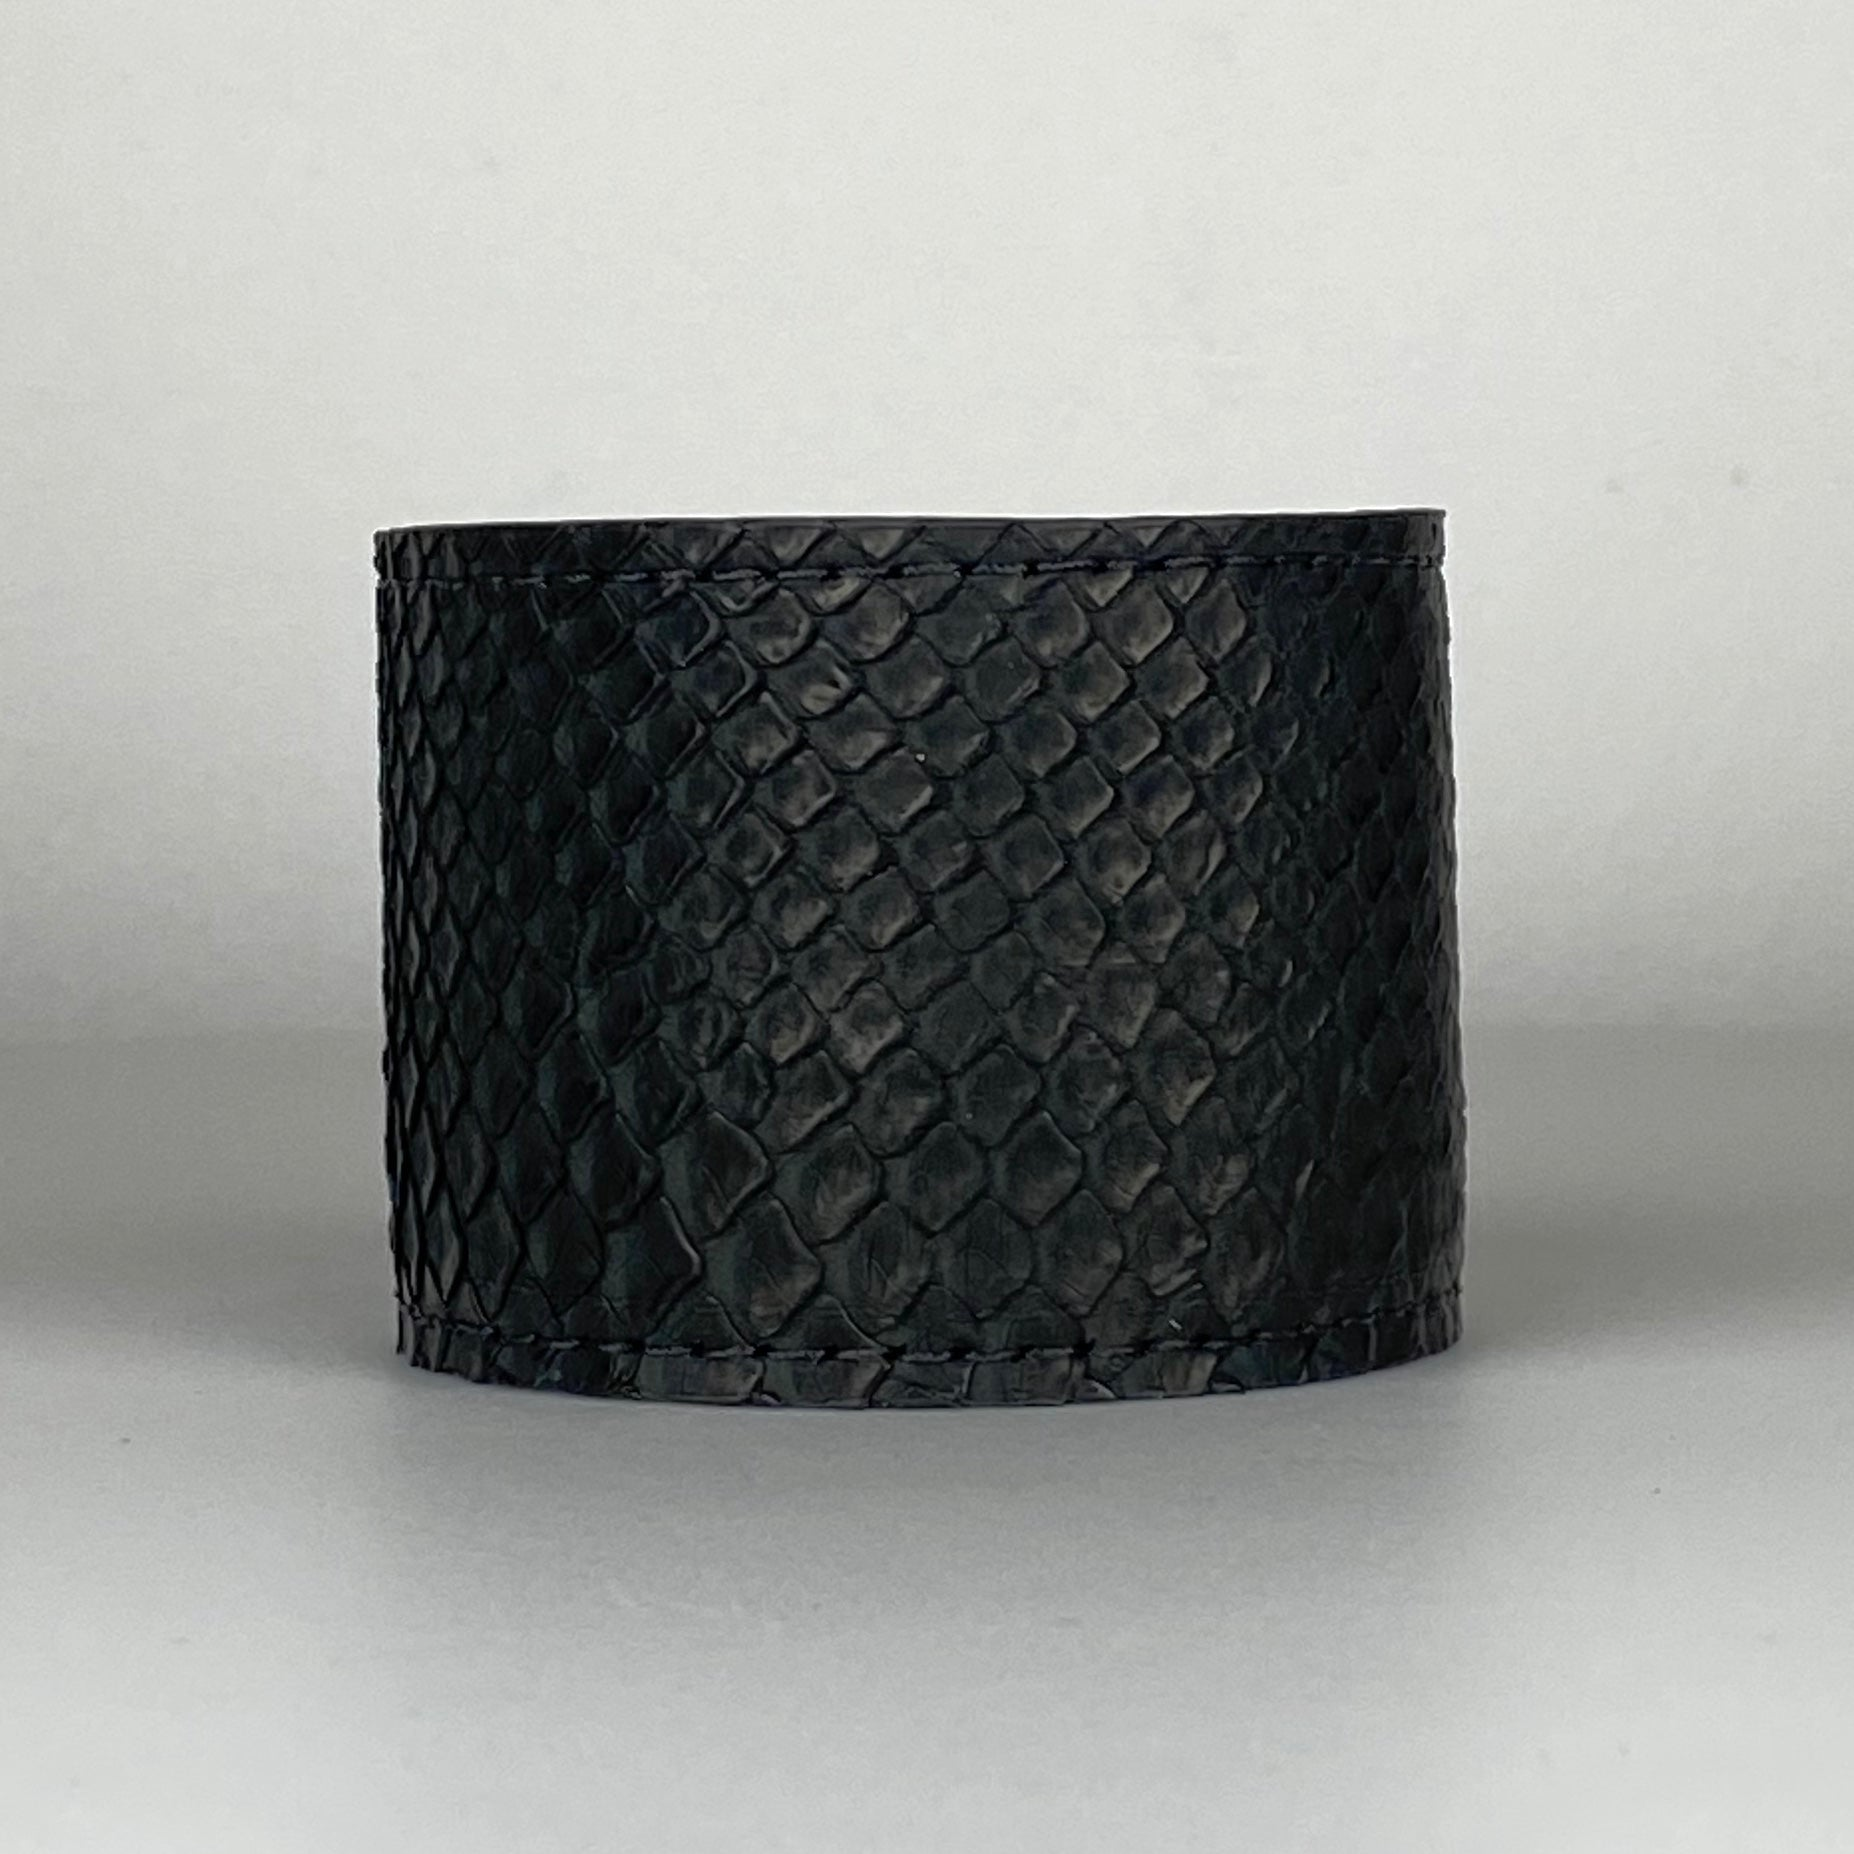 BLACK SNAKESKIN CUFF L/XL ADJUSTABLE